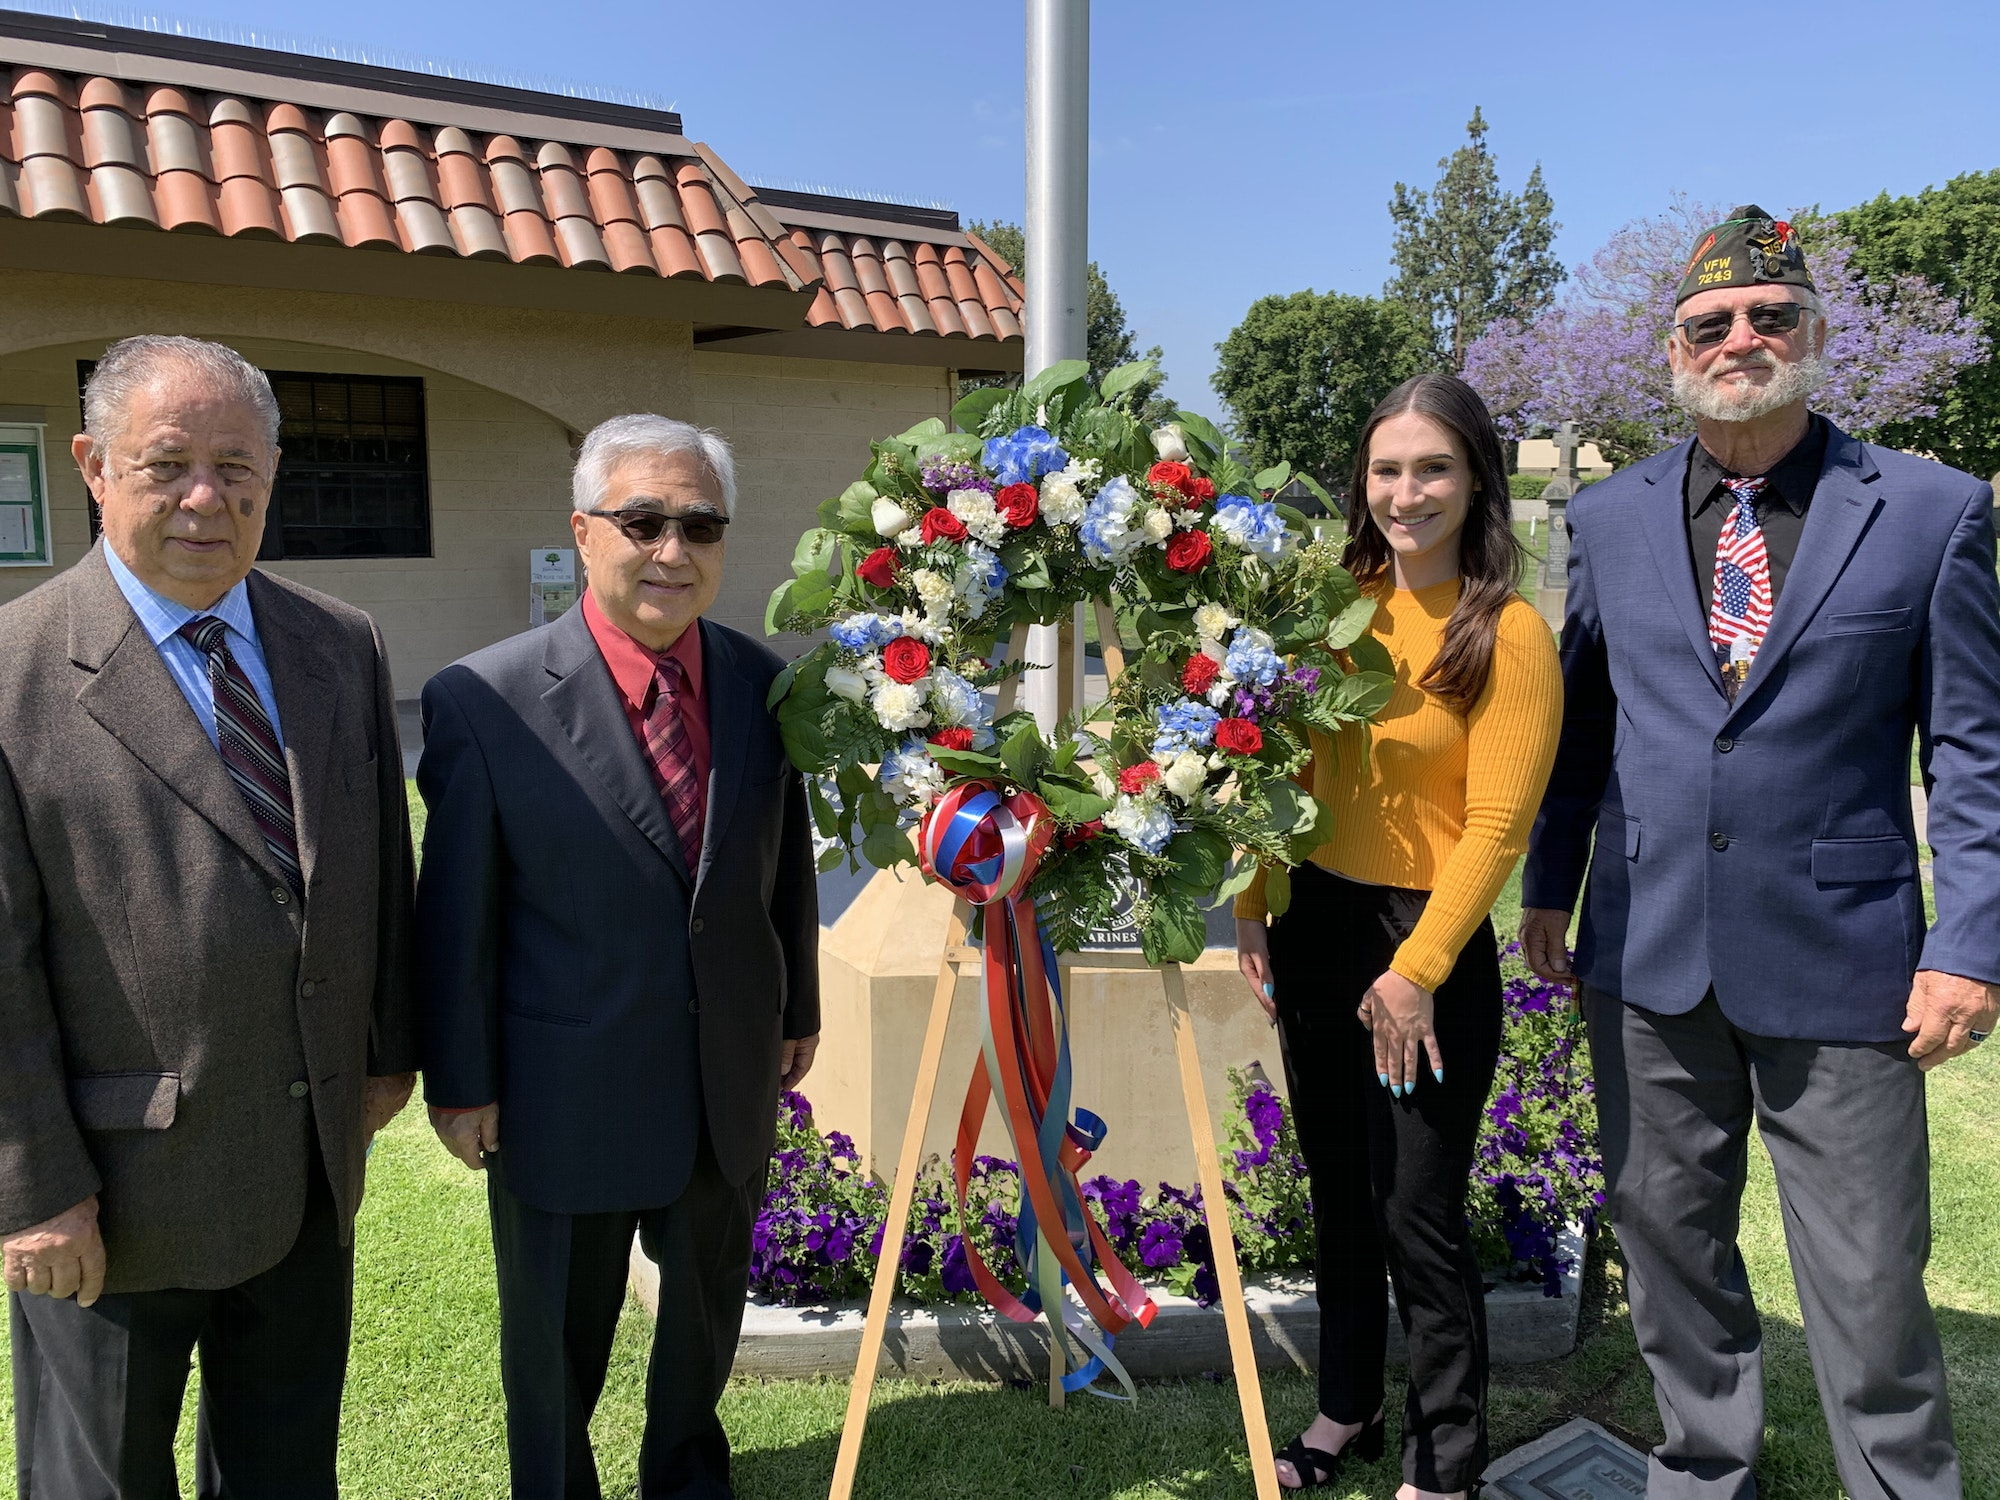 Board of Trustees present wreath for Memorial Day 2021